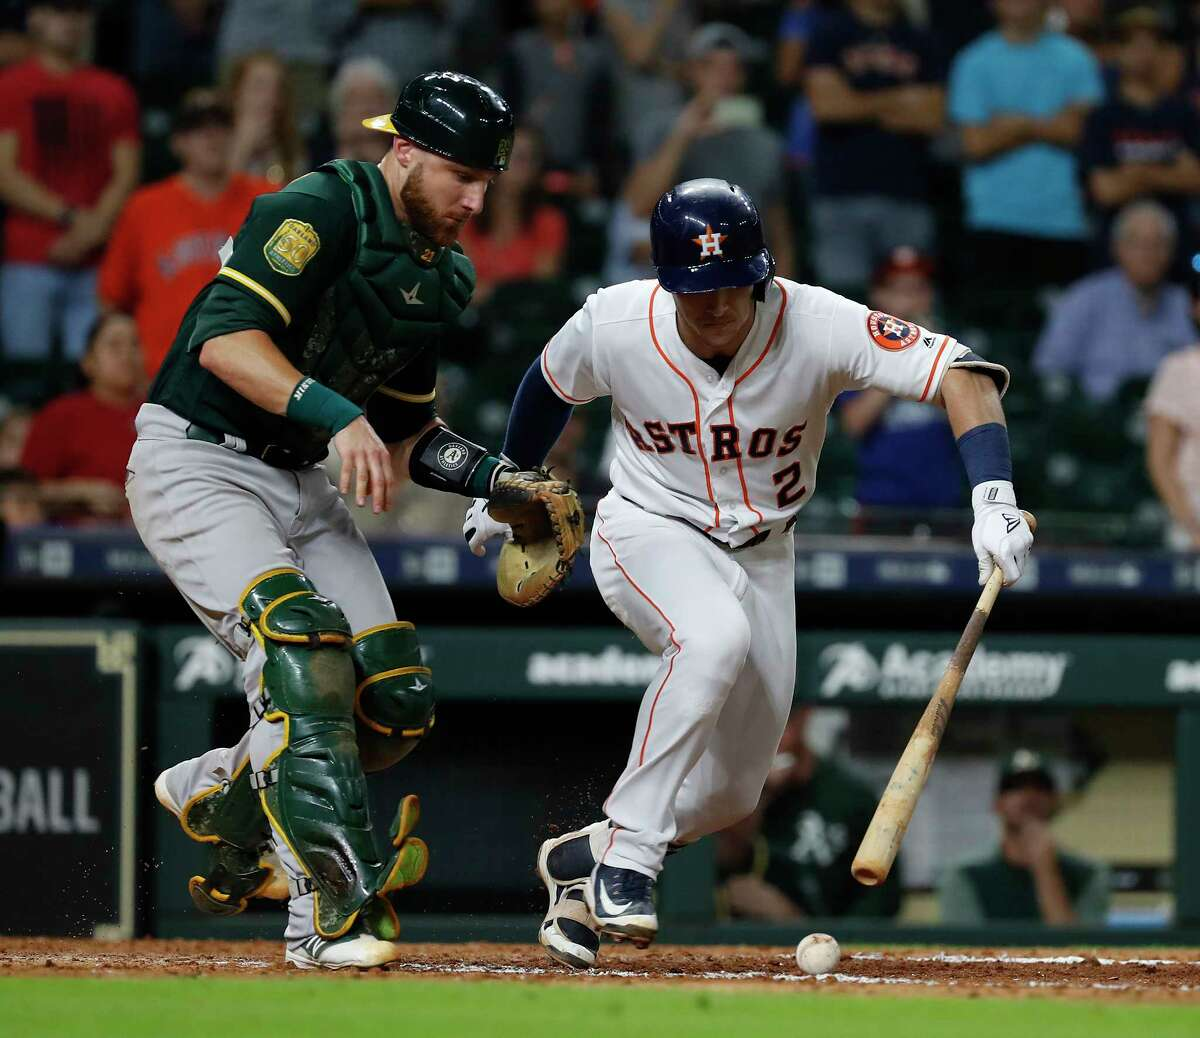 Houston Astros Alex Bregman (2) breaks down the line as Oakland Athletics catcher Jonathan Lucroy reaches for the dribbler during the eleventh inning of an MLB game at Minute Maid Park, Tuesday, July 10, 2018, in Houston.